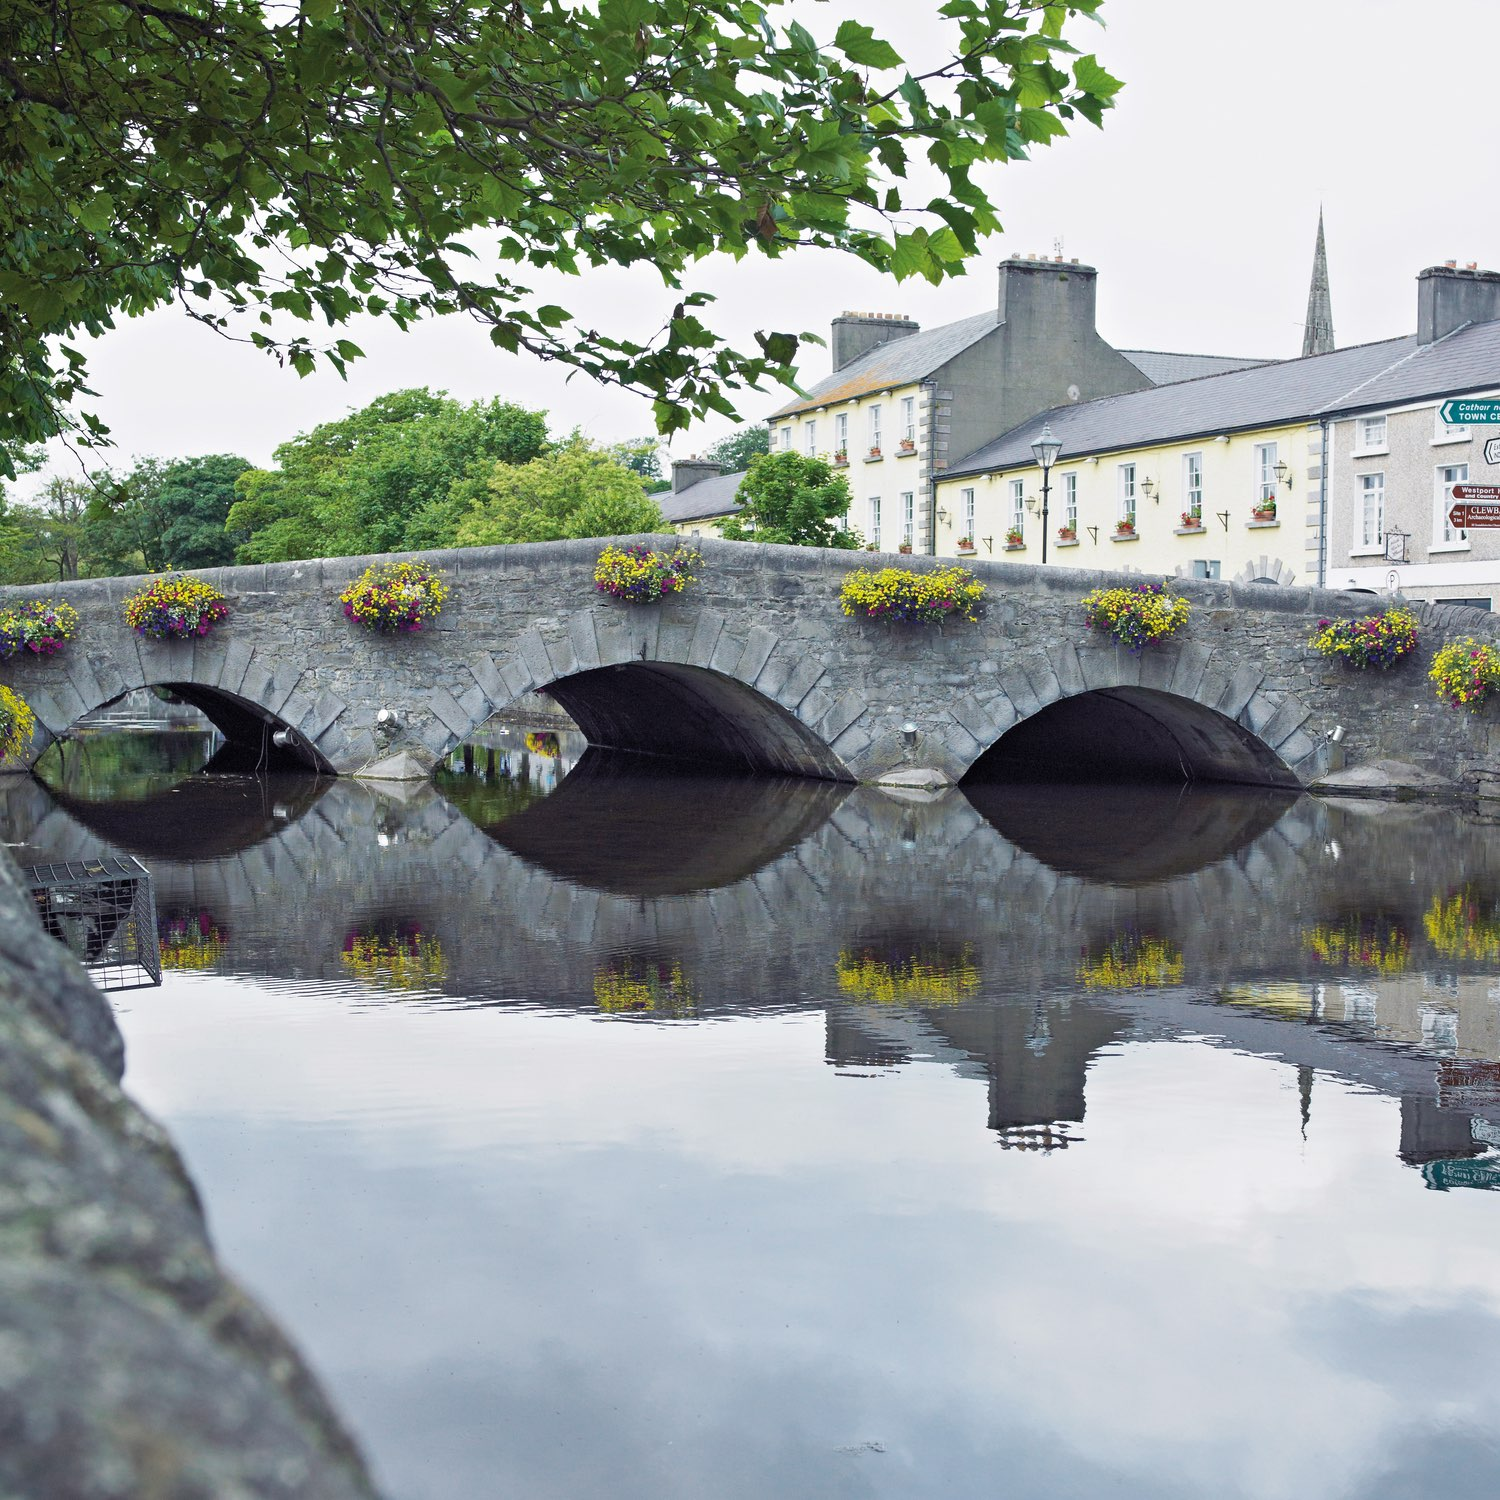 The calm Carrowbeg River flows almost directly through Westport's city centre and makes for a scenic stroll along the Mall to the north and south.  Photo by Richard Semik / Shutterstock